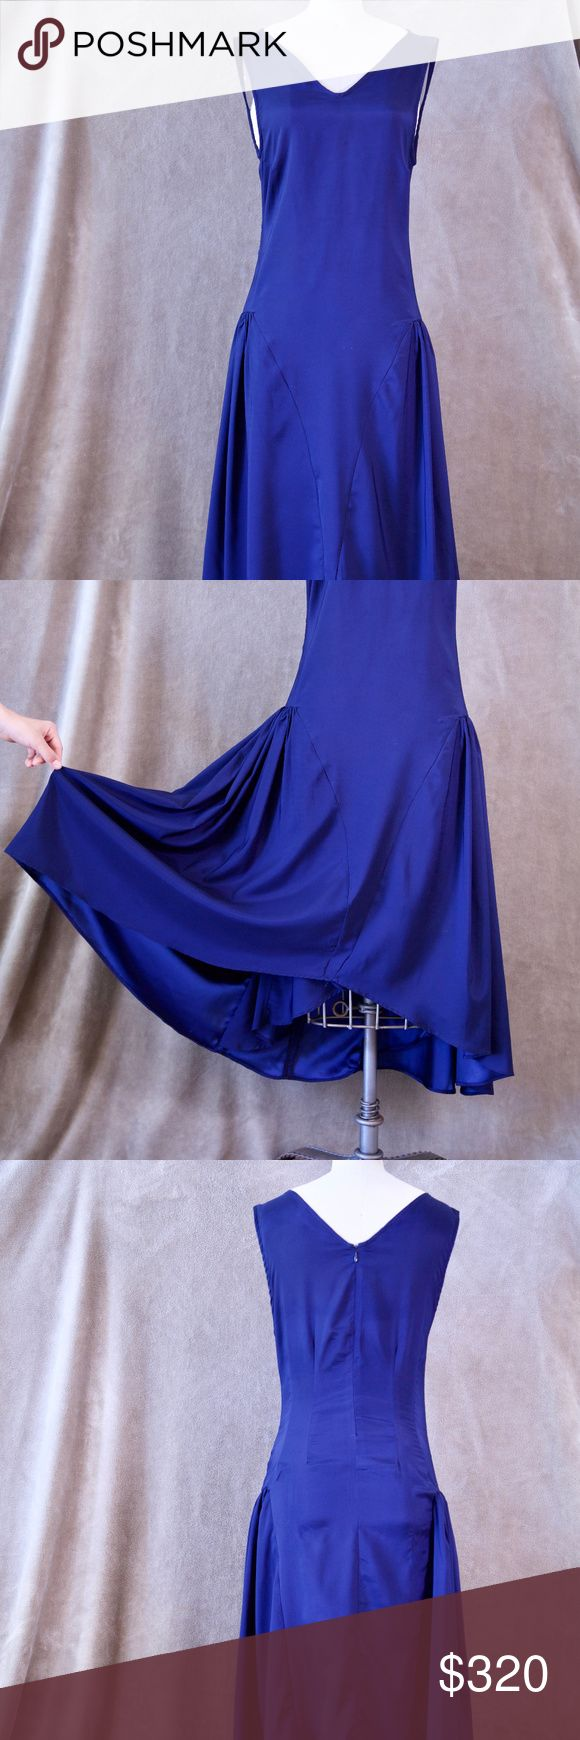 KAROLYN PHO Blue Silk Dress YOU WON'T FIND THIS DRESS ANYWHERE ELSE!!   This gorgeous Karolyn Pho masterpiece is all silk inside and out!  Princess-pleats at the hips give your profile a dramatic flare, and the dress is cut to show off gentle curves with finesse. The front is knee length and the back reaches just above the ankles.  The fit is slim and graceful.  A true treasure!! Karolyn Pho Dresses Asymmetrical